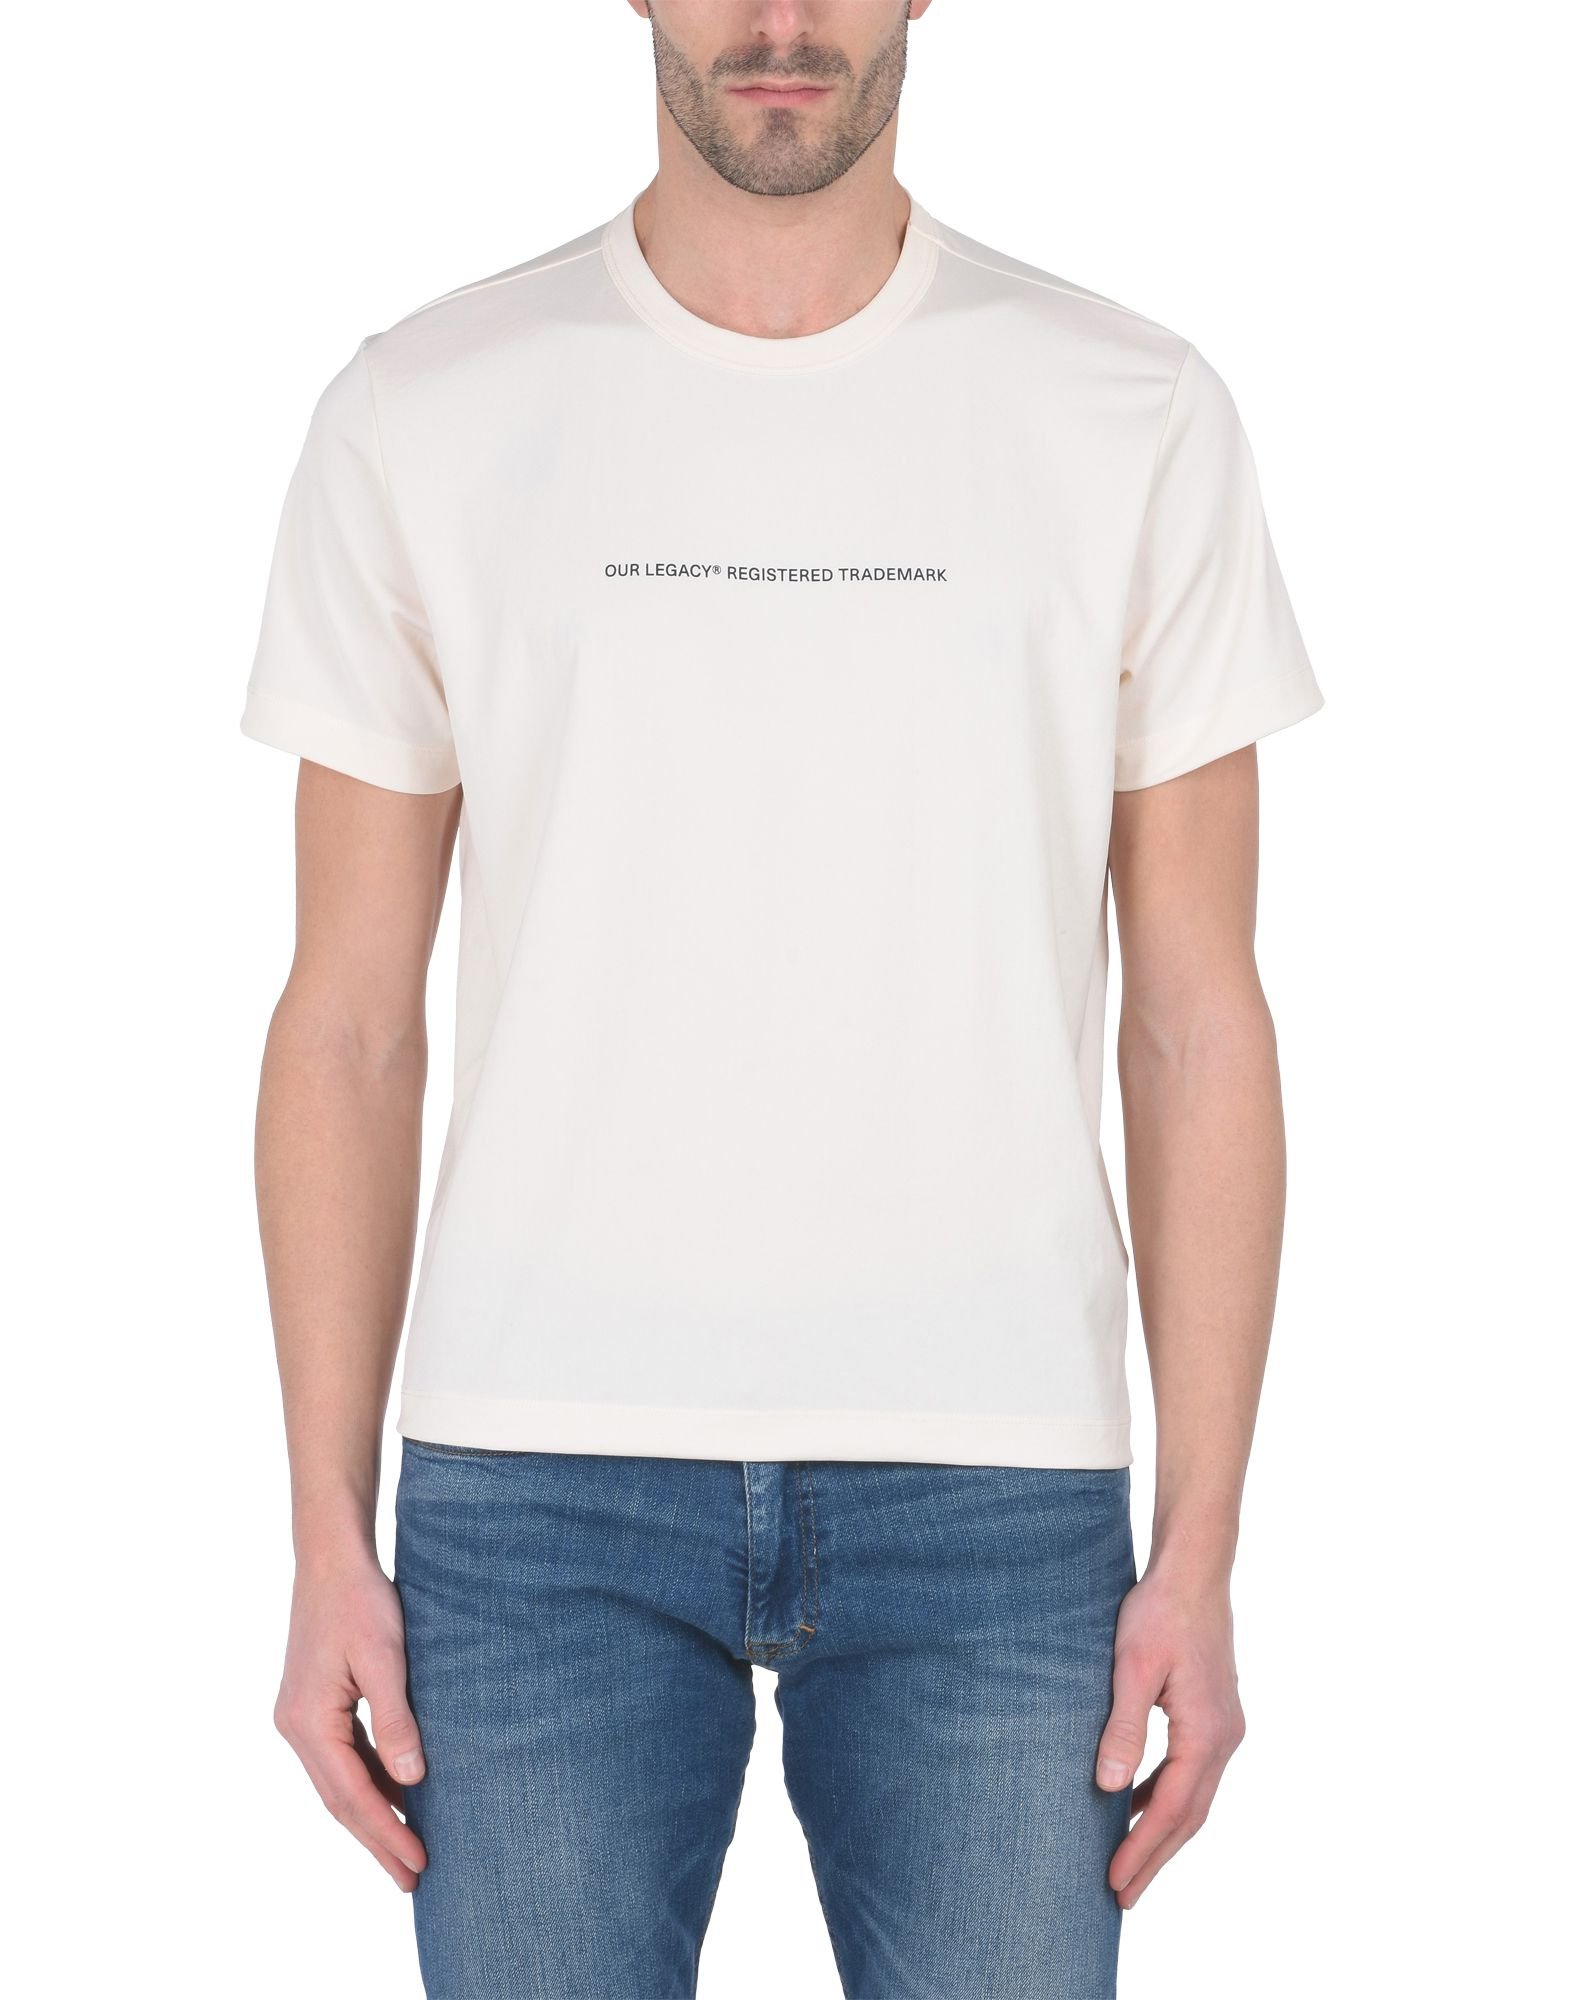 T-Shirt Our Our T-Shirt Legacy 300000002596 - Uomo - 12157288BA 920b4d